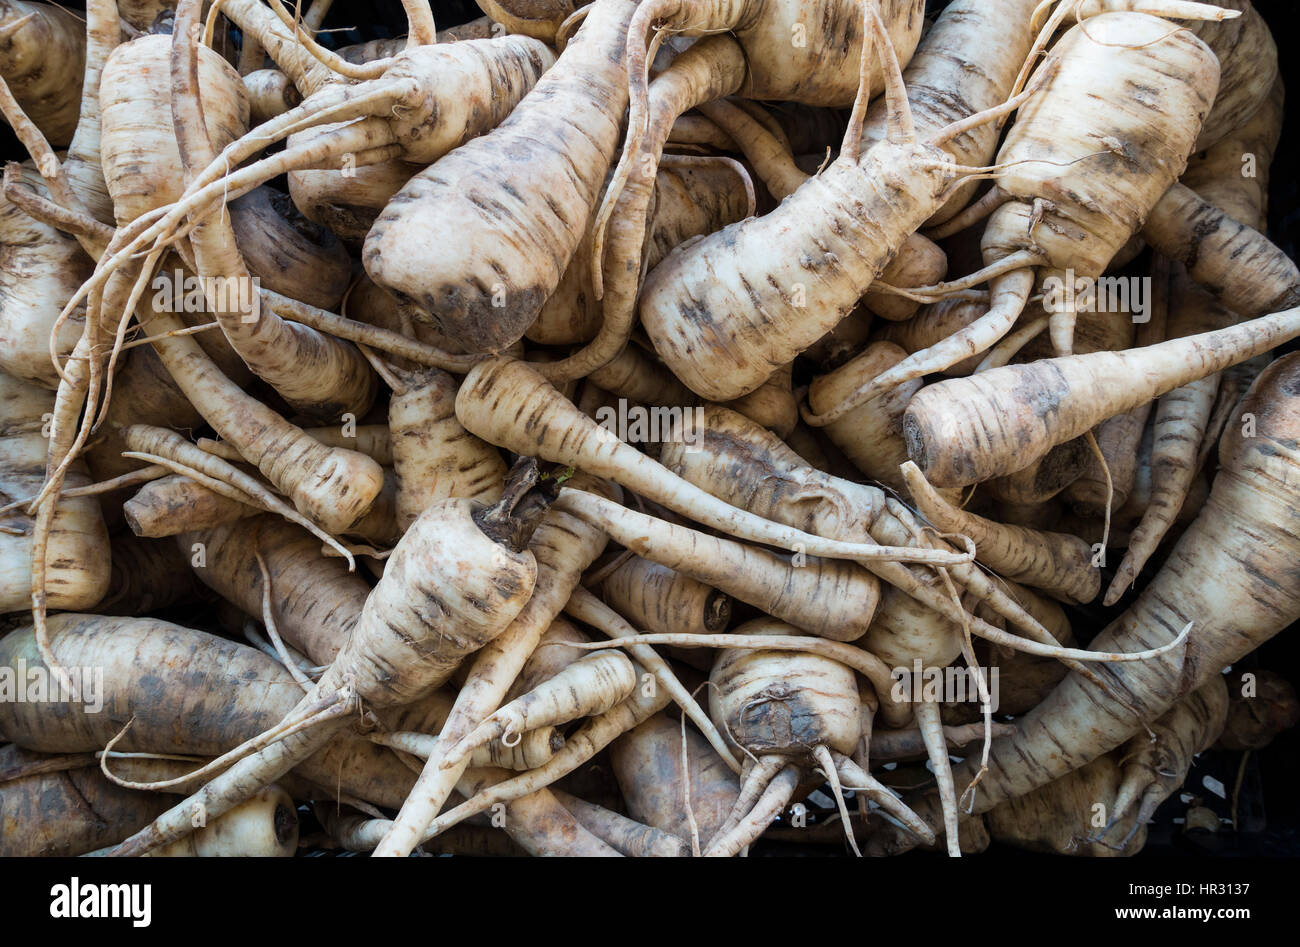 Parsnips - Stock Image